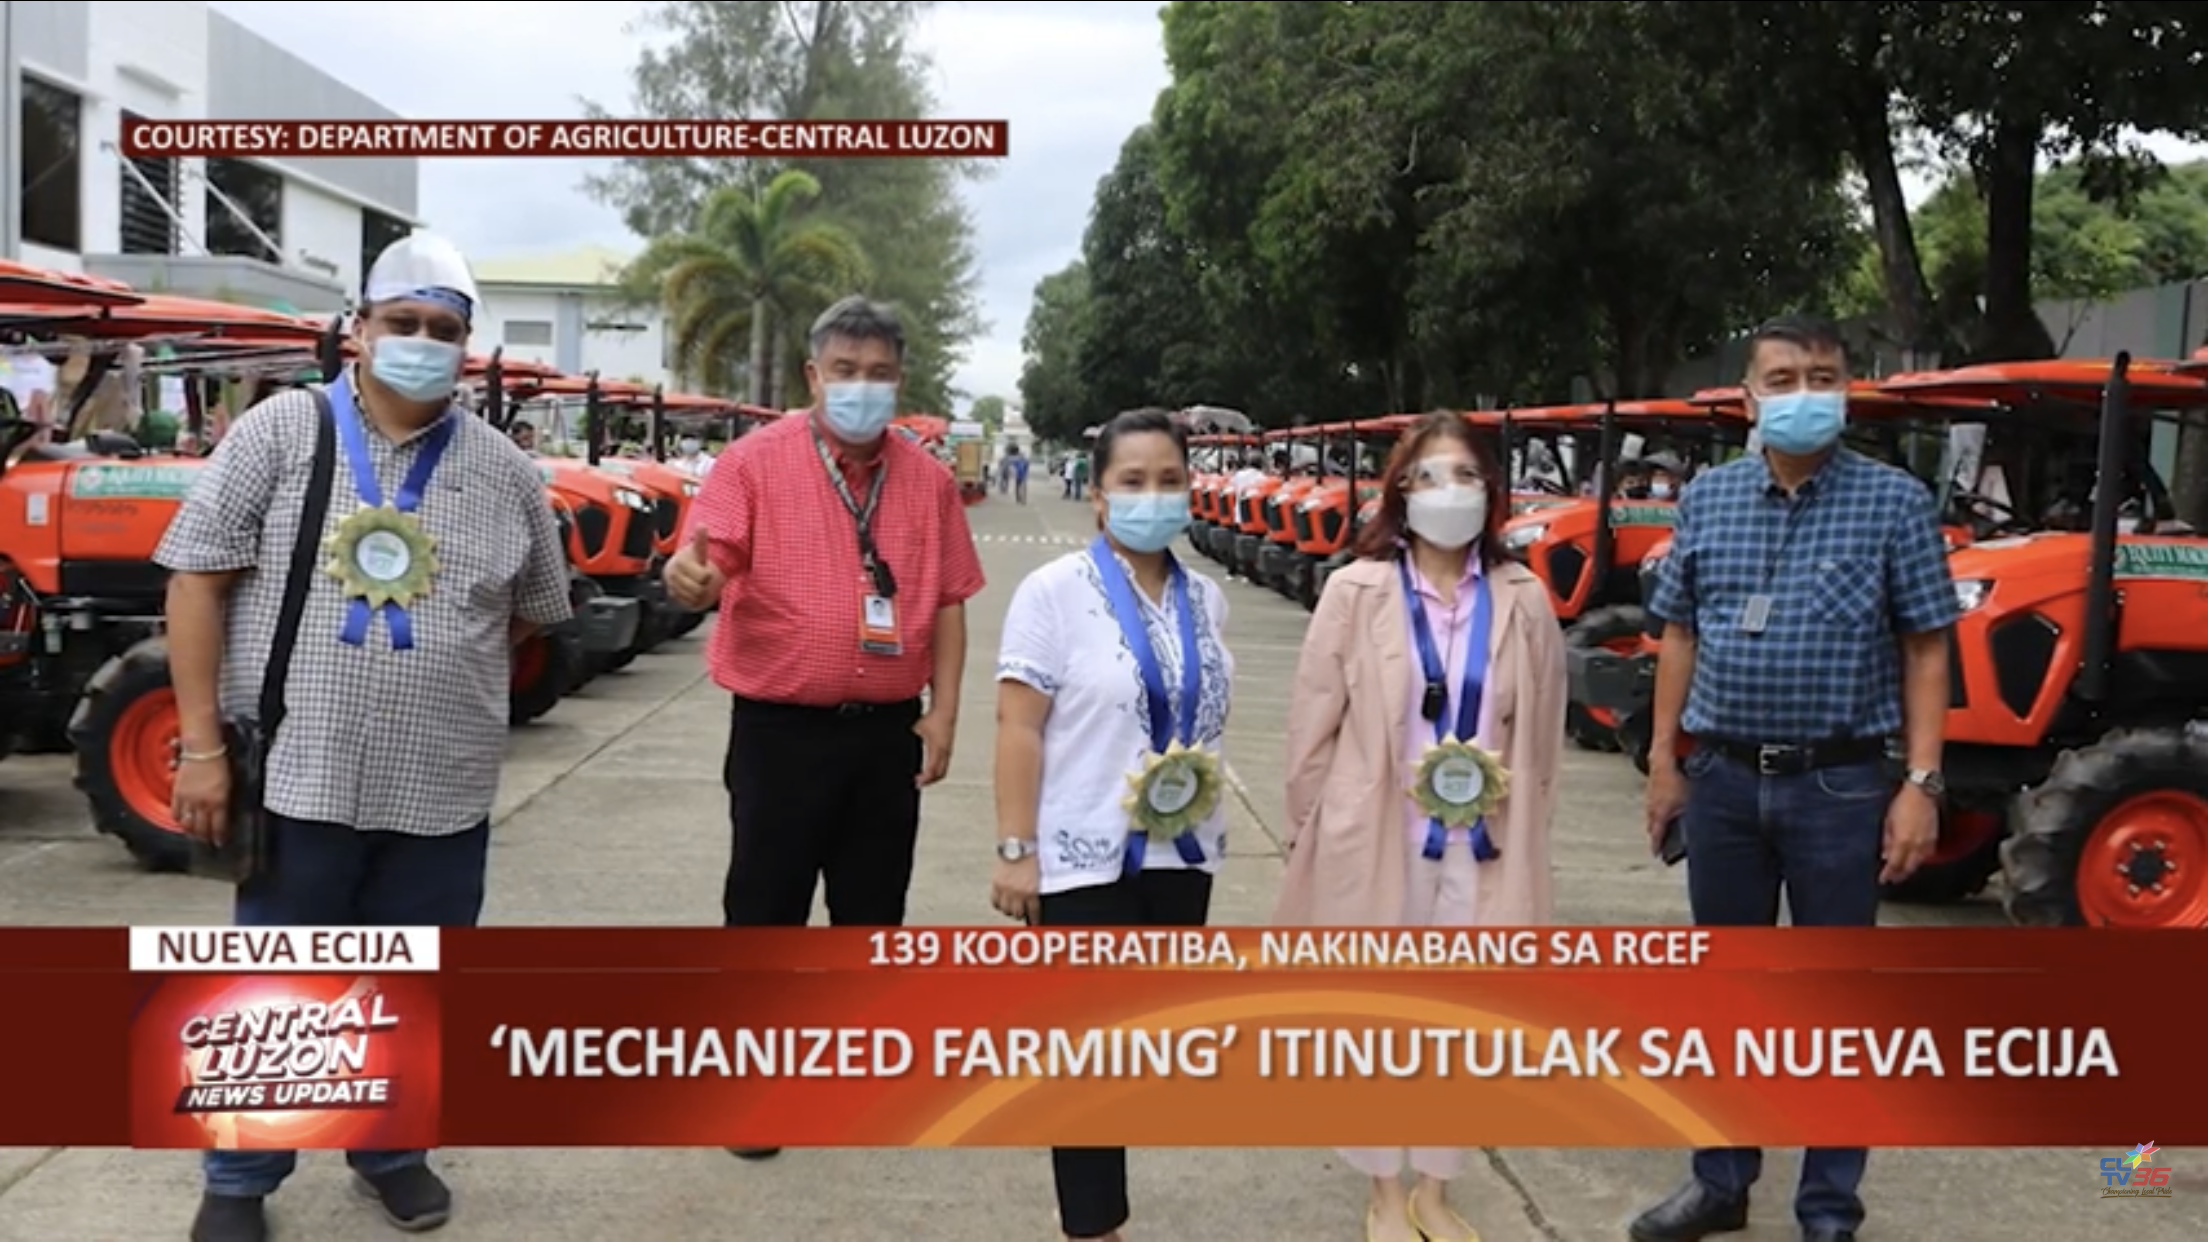 'Mechanized Farming' itinulak sa Nueva Ecija | CLTV News